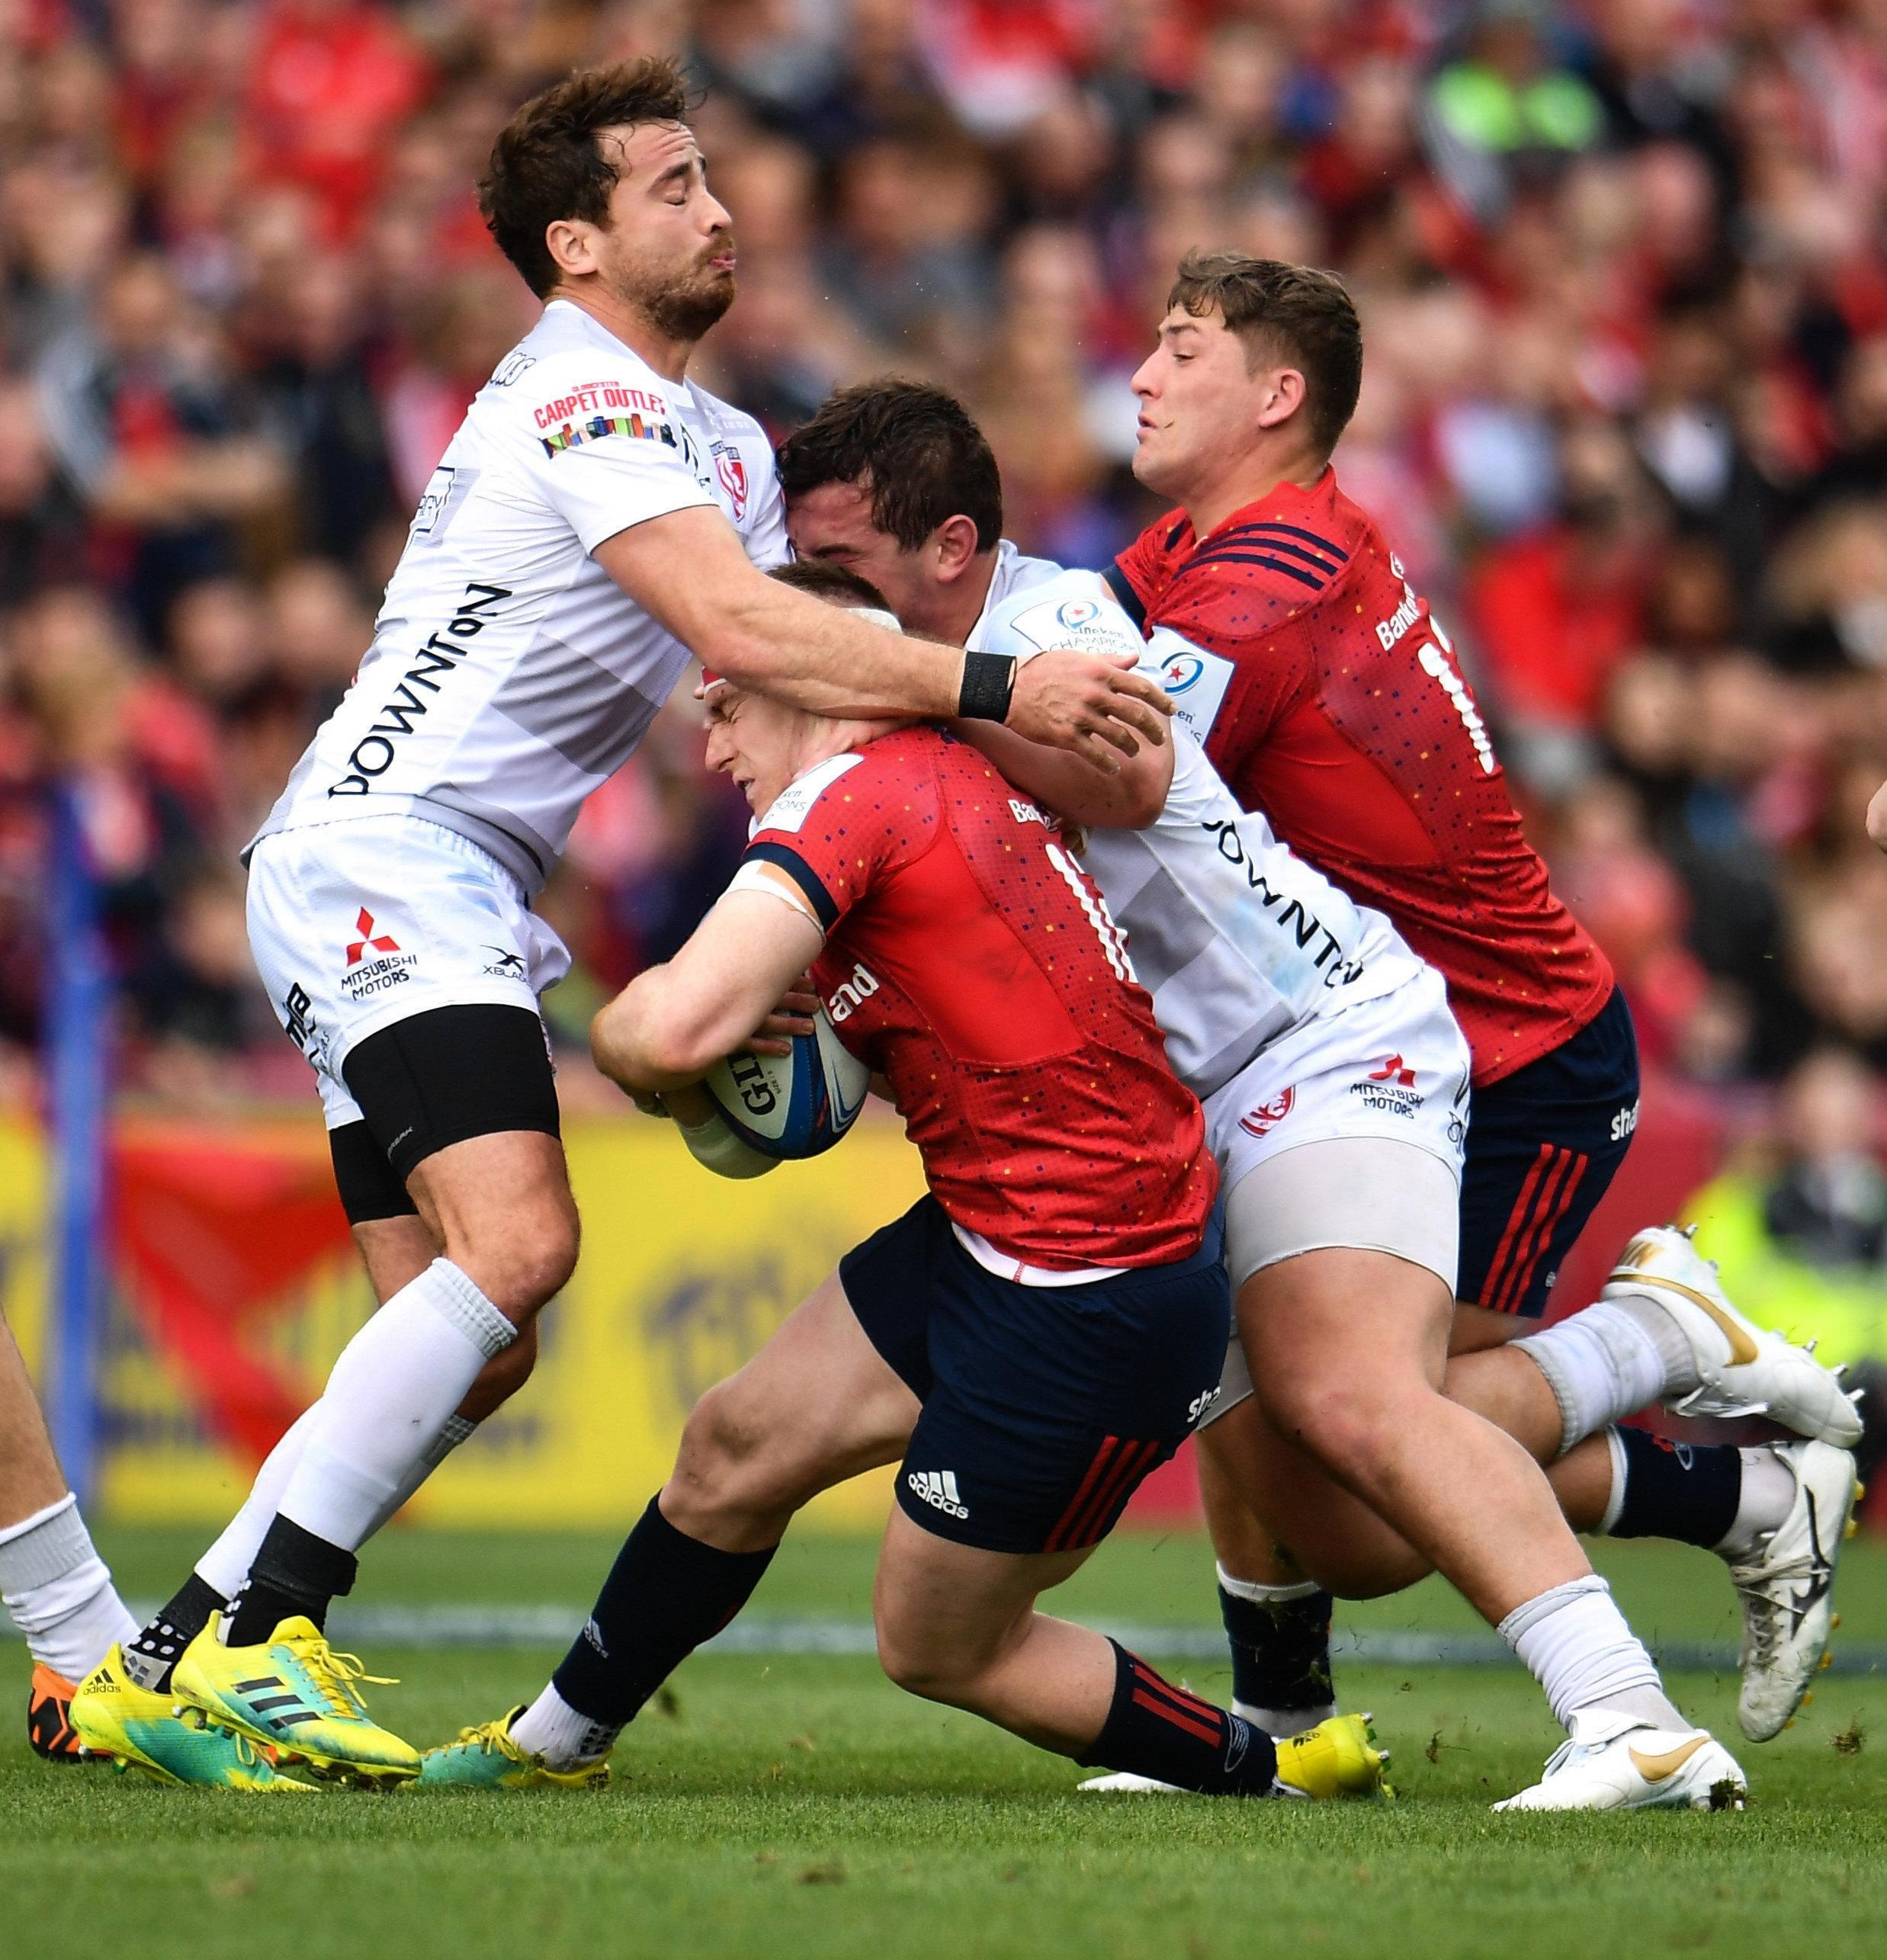 Cirpriani was adjudged to have hit Scannell with his shoulder in a high tackle as World Rugby crack down on dangerous tackles